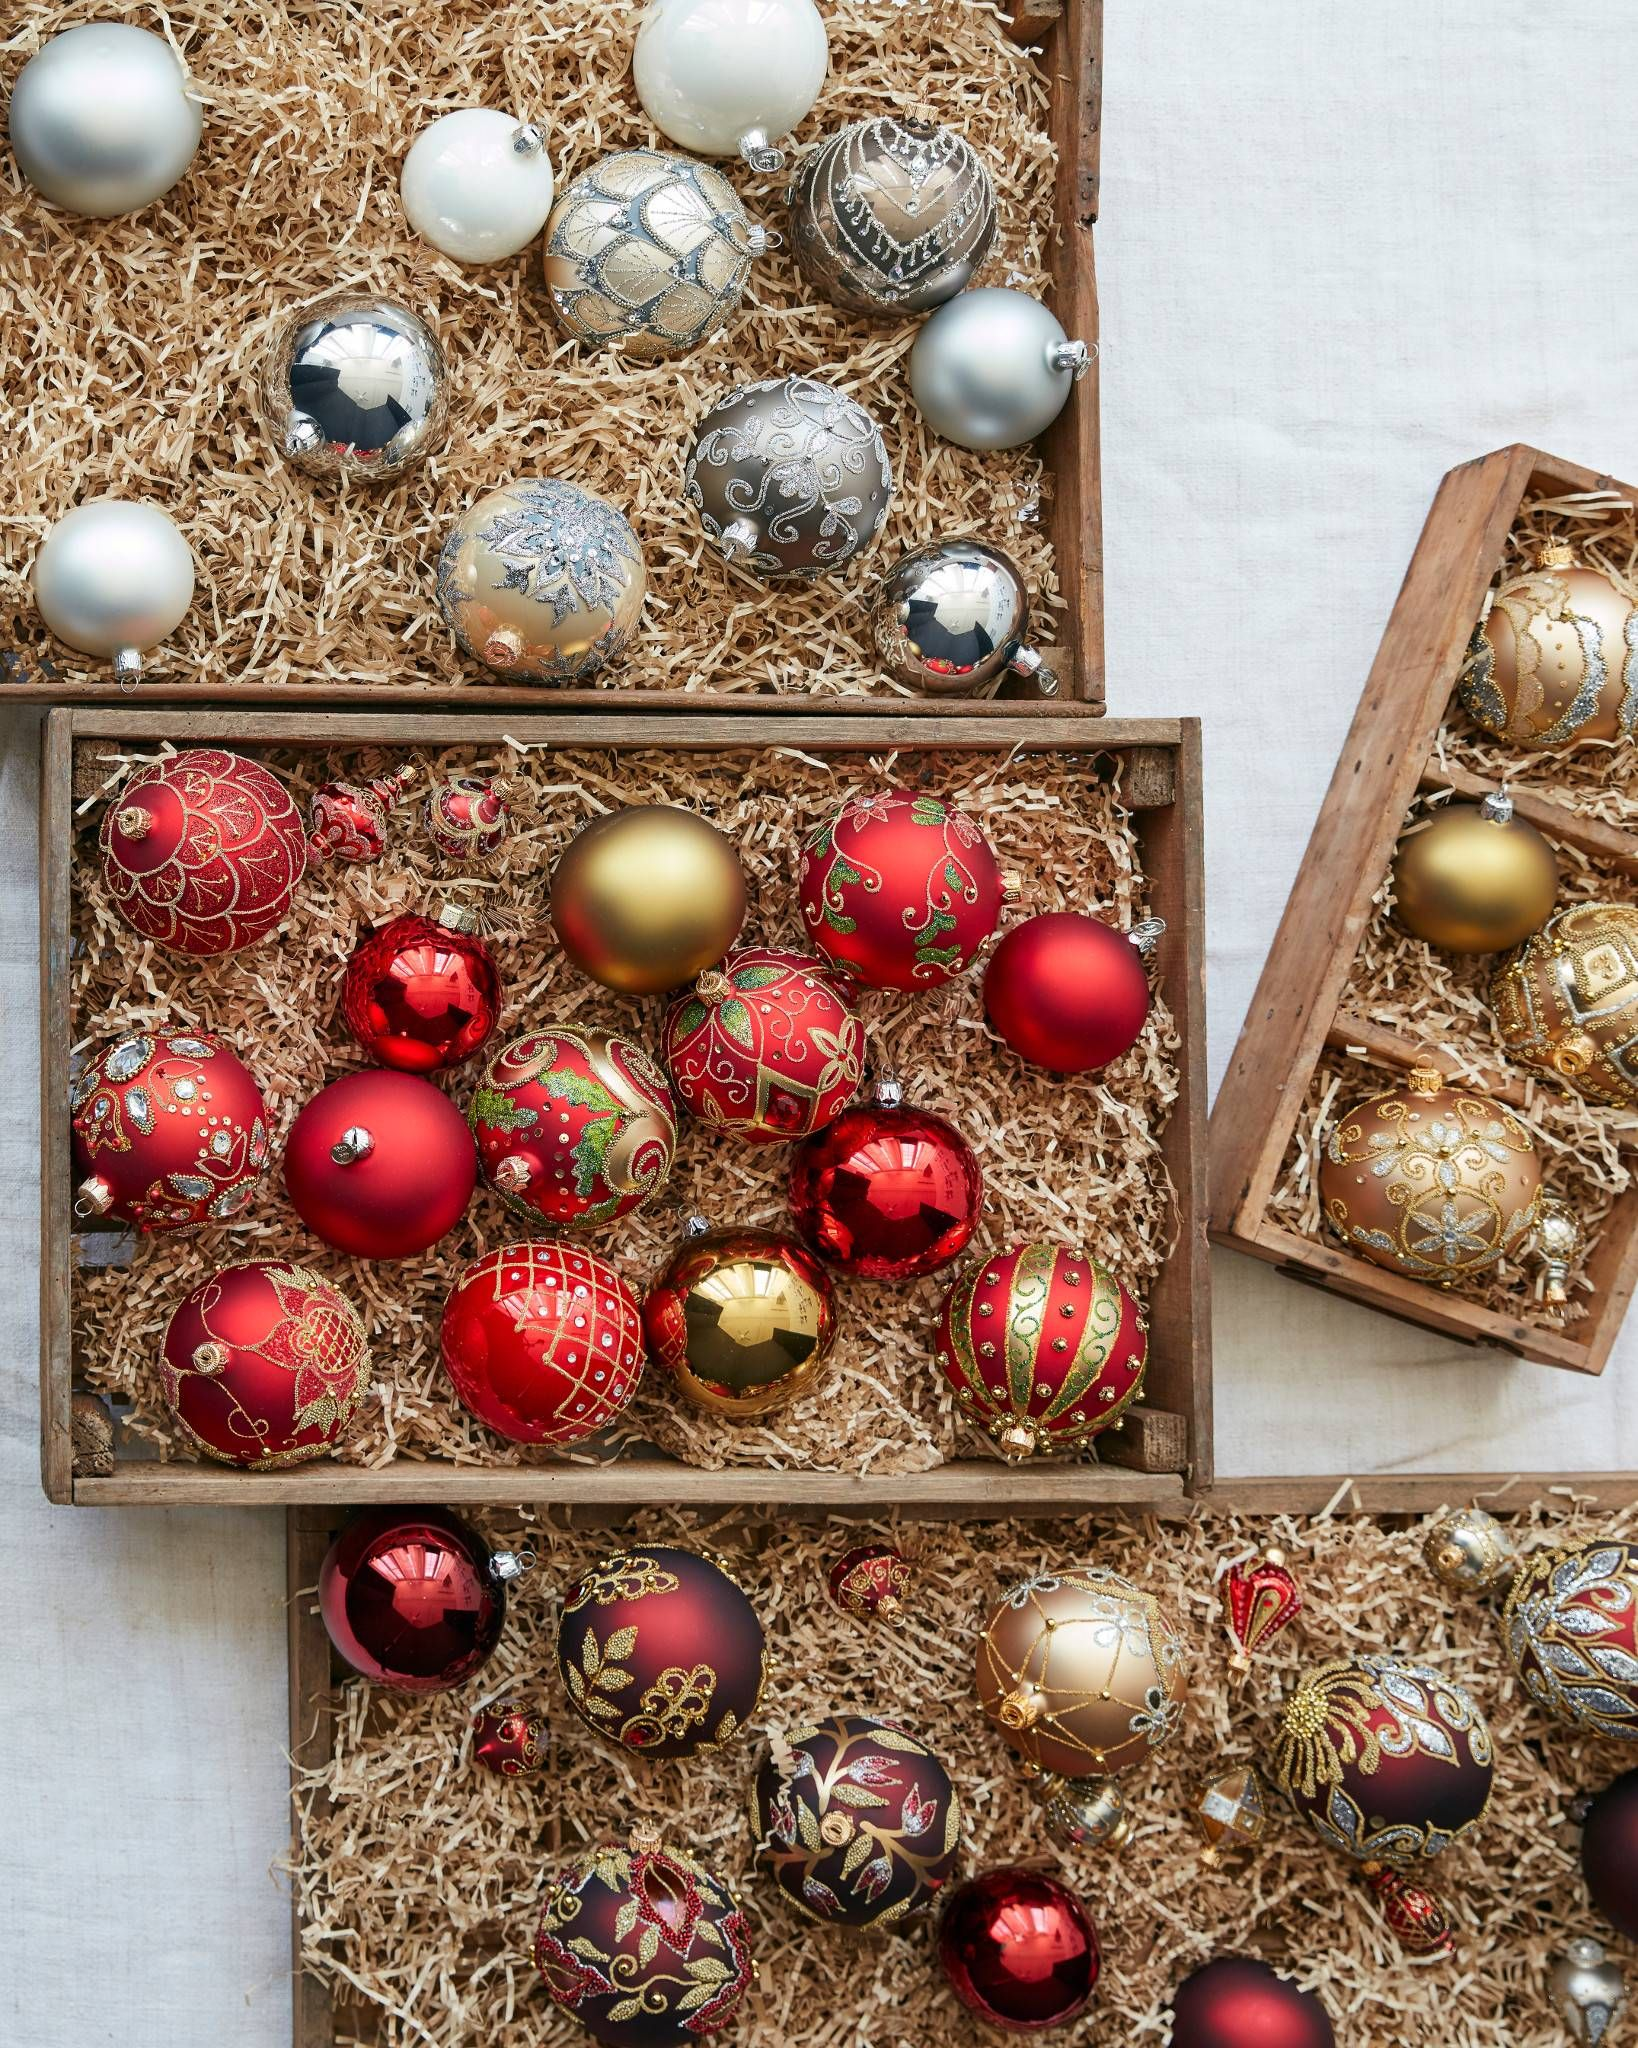 Decorated Glass Ball Christmas Ornament Sets Balsam Hill Ornament Set Christmas Ornament Sets Glass Ball Ornaments